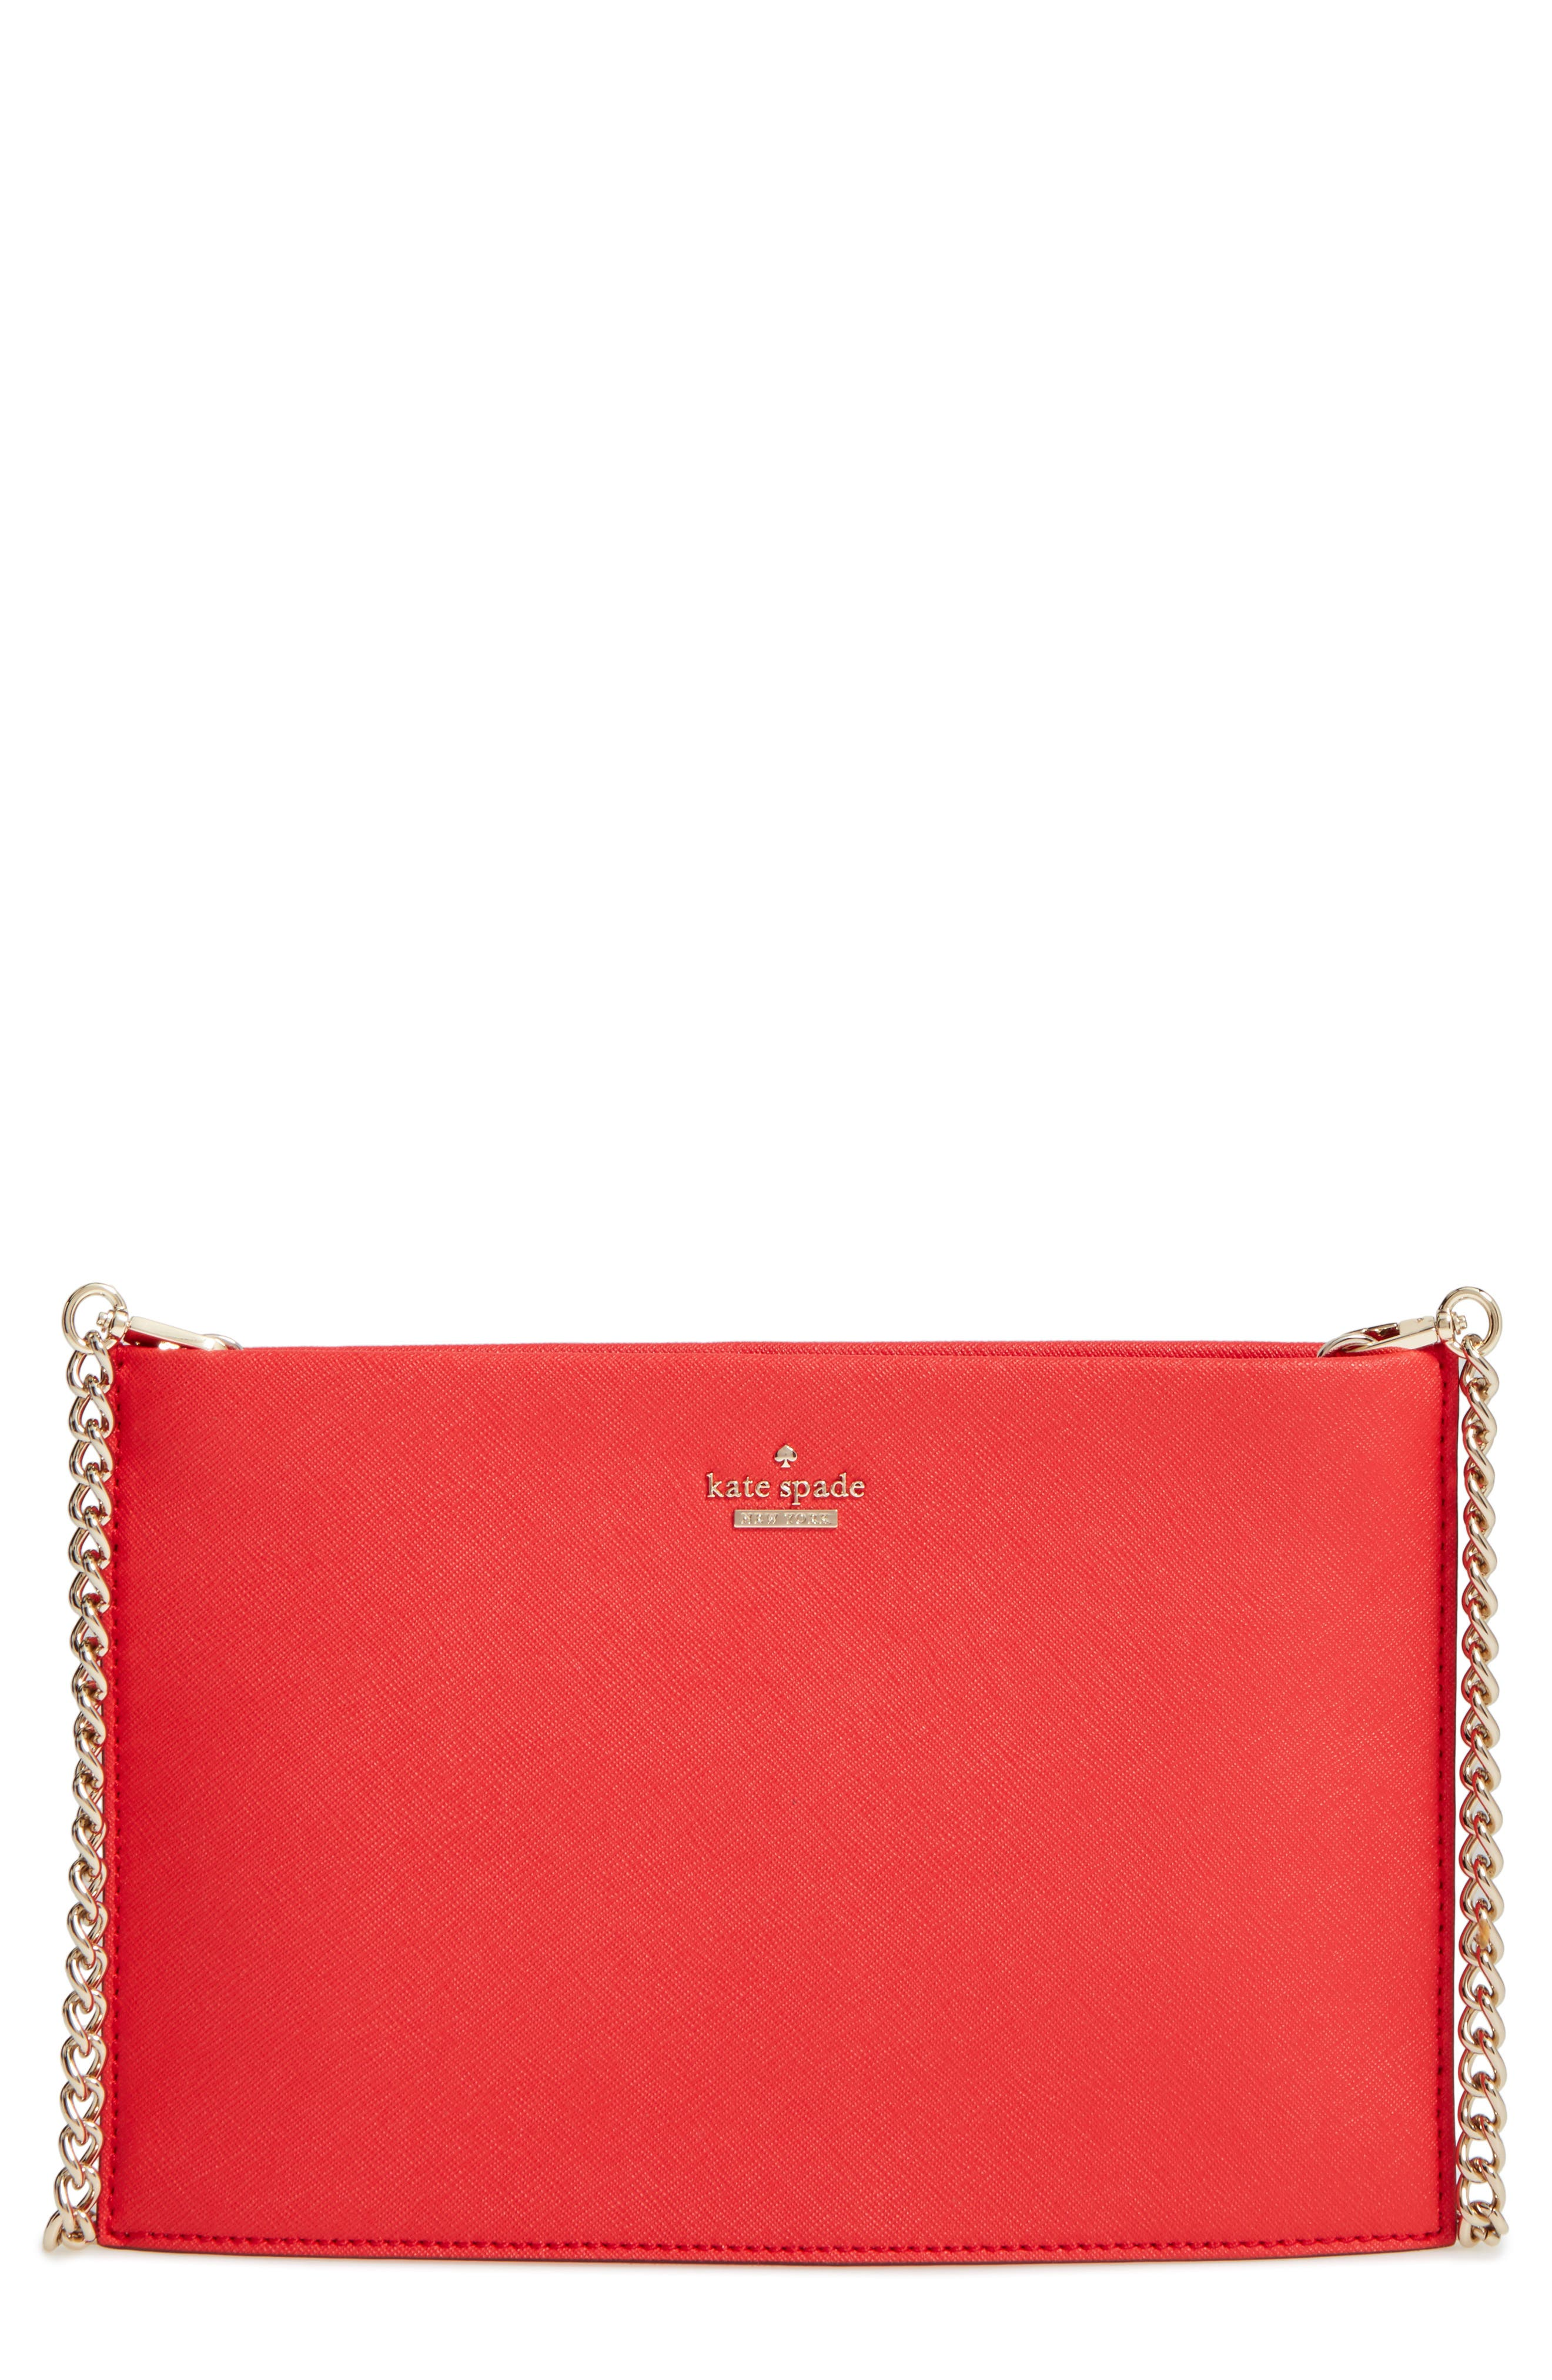 kate spade new york cameron street - sima leather shoulder bag ...